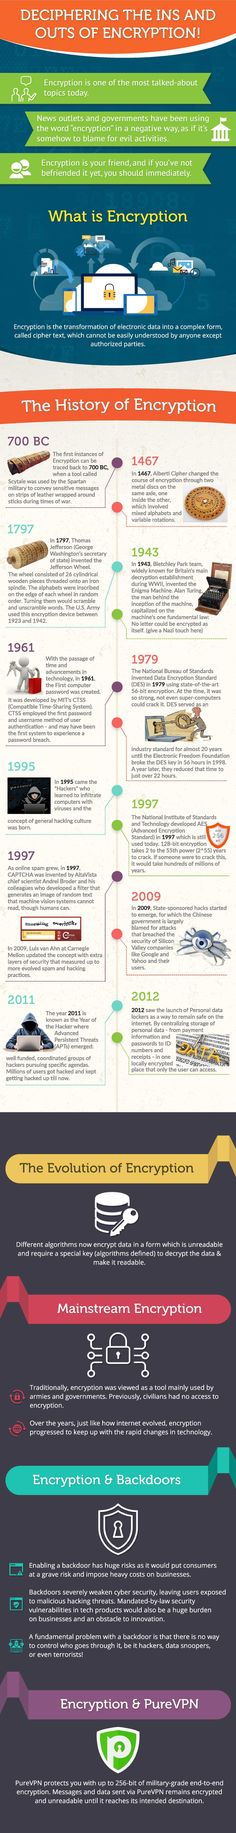 Deciphering the History of Encryption #Infographic #Technology